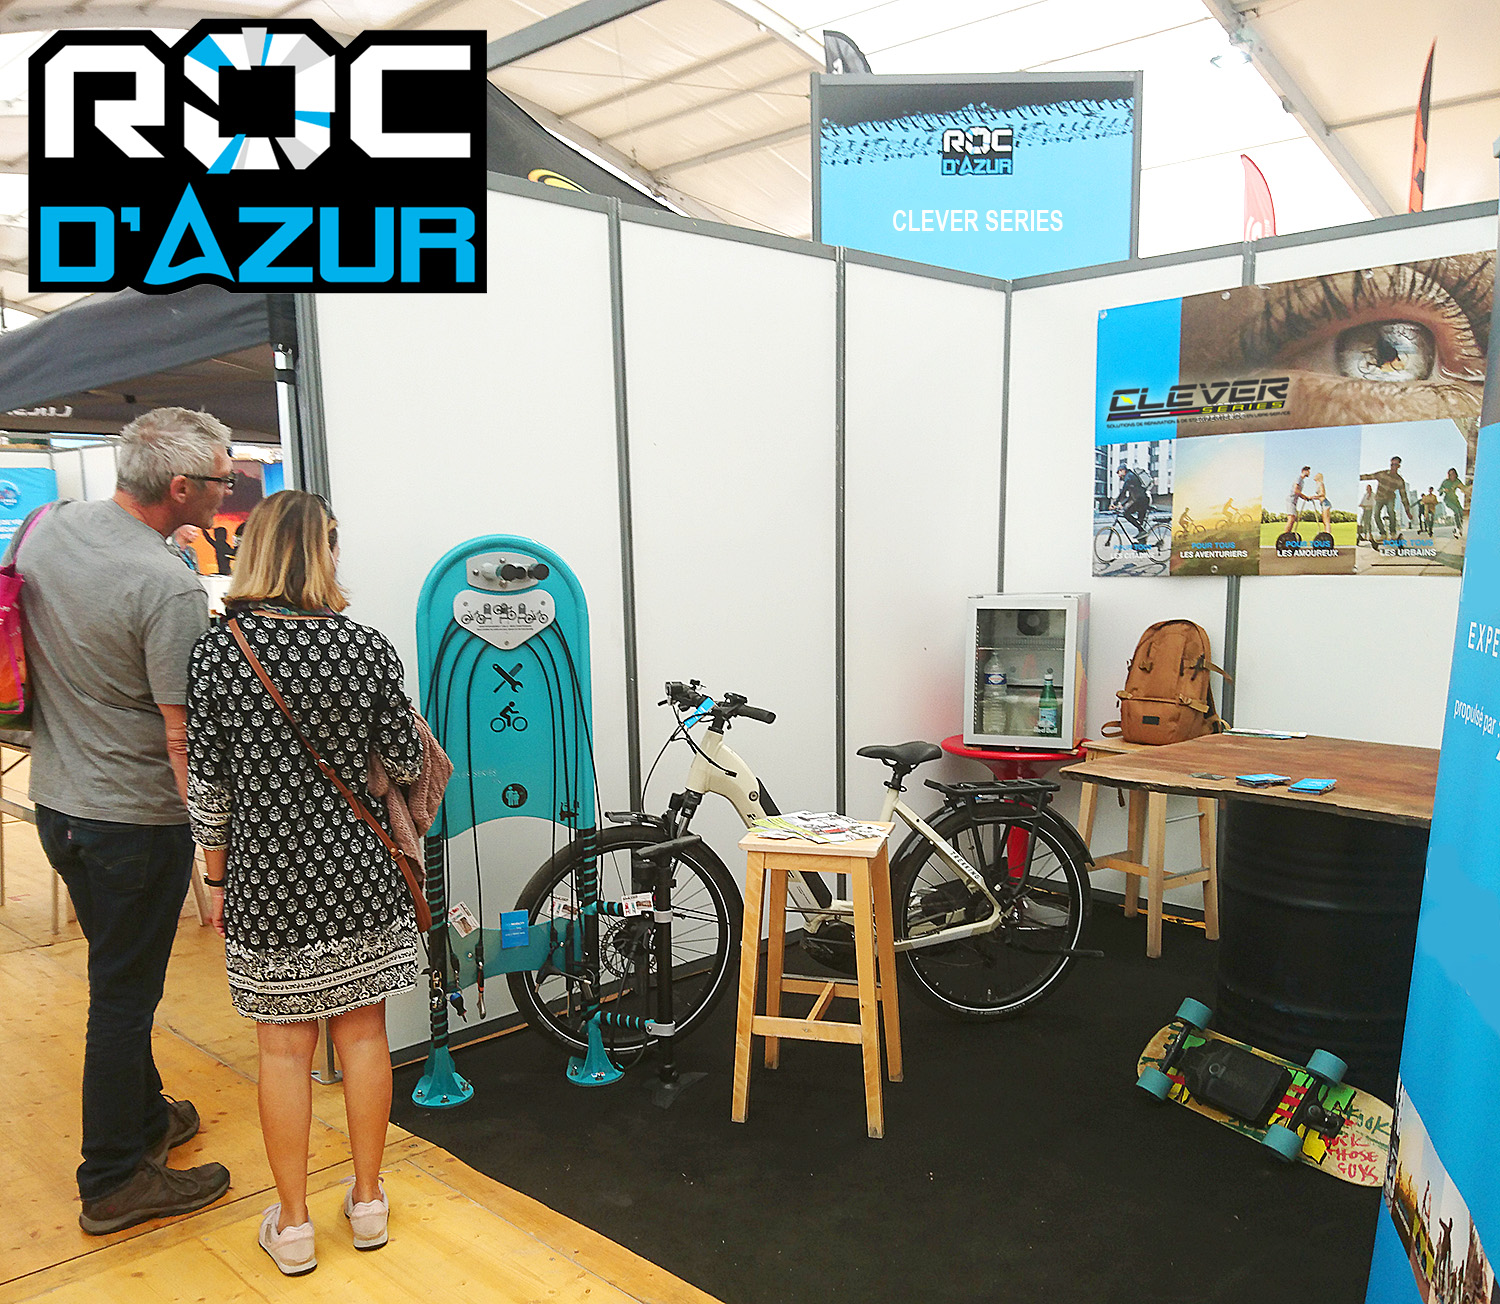 Roc d'Azur 2021 – Stand CLEVER Series